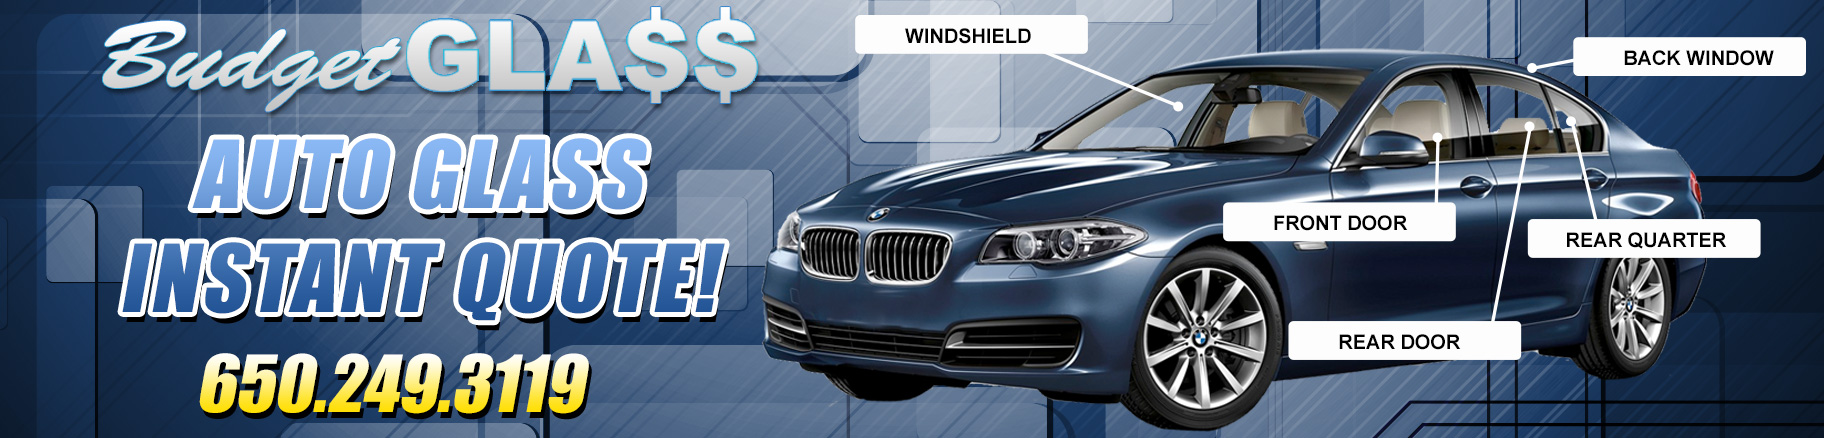 Auto Glass Quote Pleasing Auto Glass Repair San Carlos  California Windshield Replacement